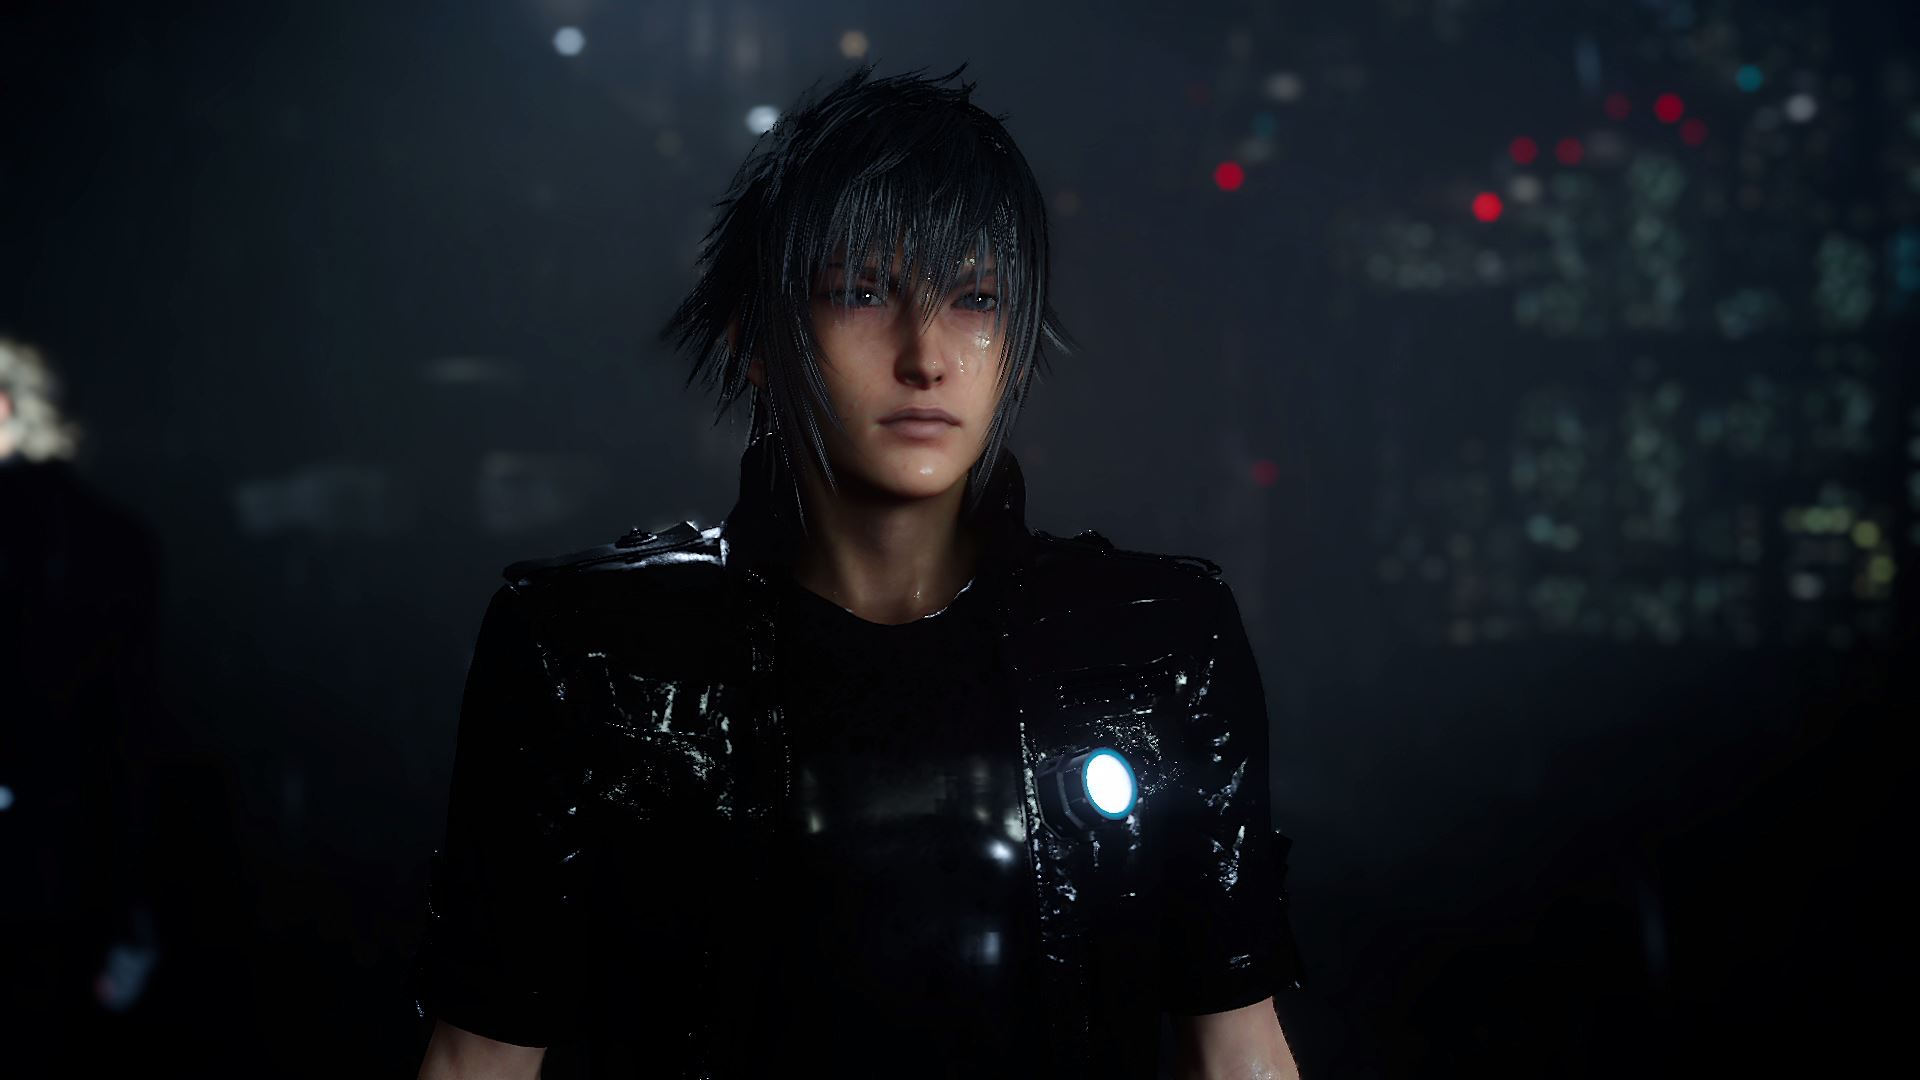 Final Fantasy Xv Wallpapers The Best 79 Images In 2018: These New Final Fantasy 15 Screens Are Rather Fetching